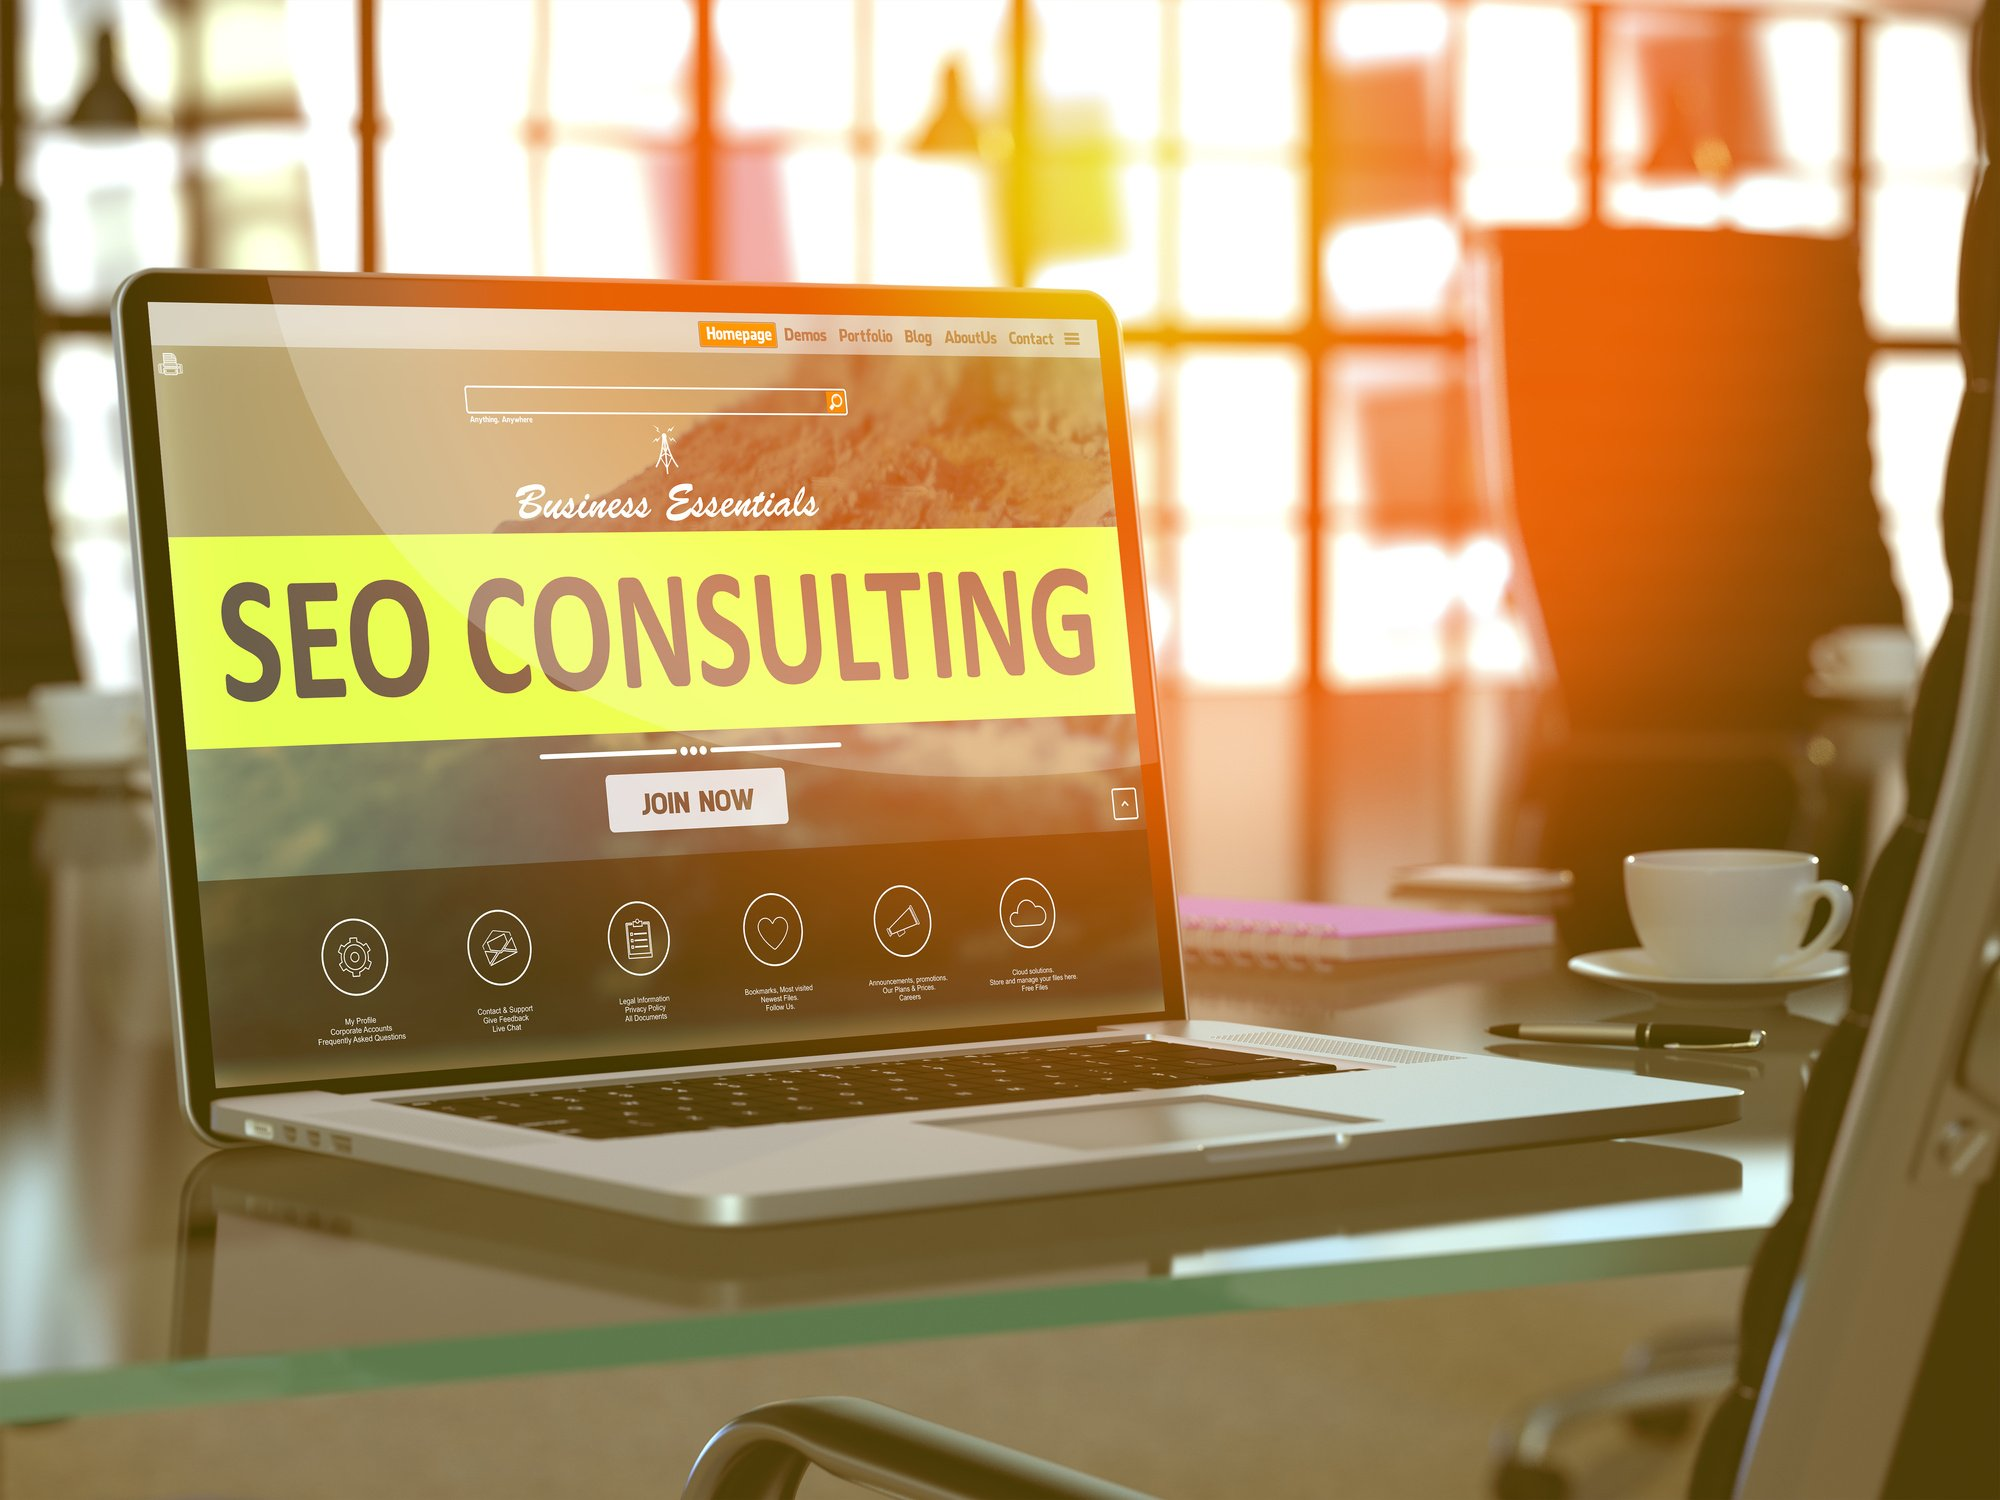 SEO consulting screen pulled up on laptop SEO agency